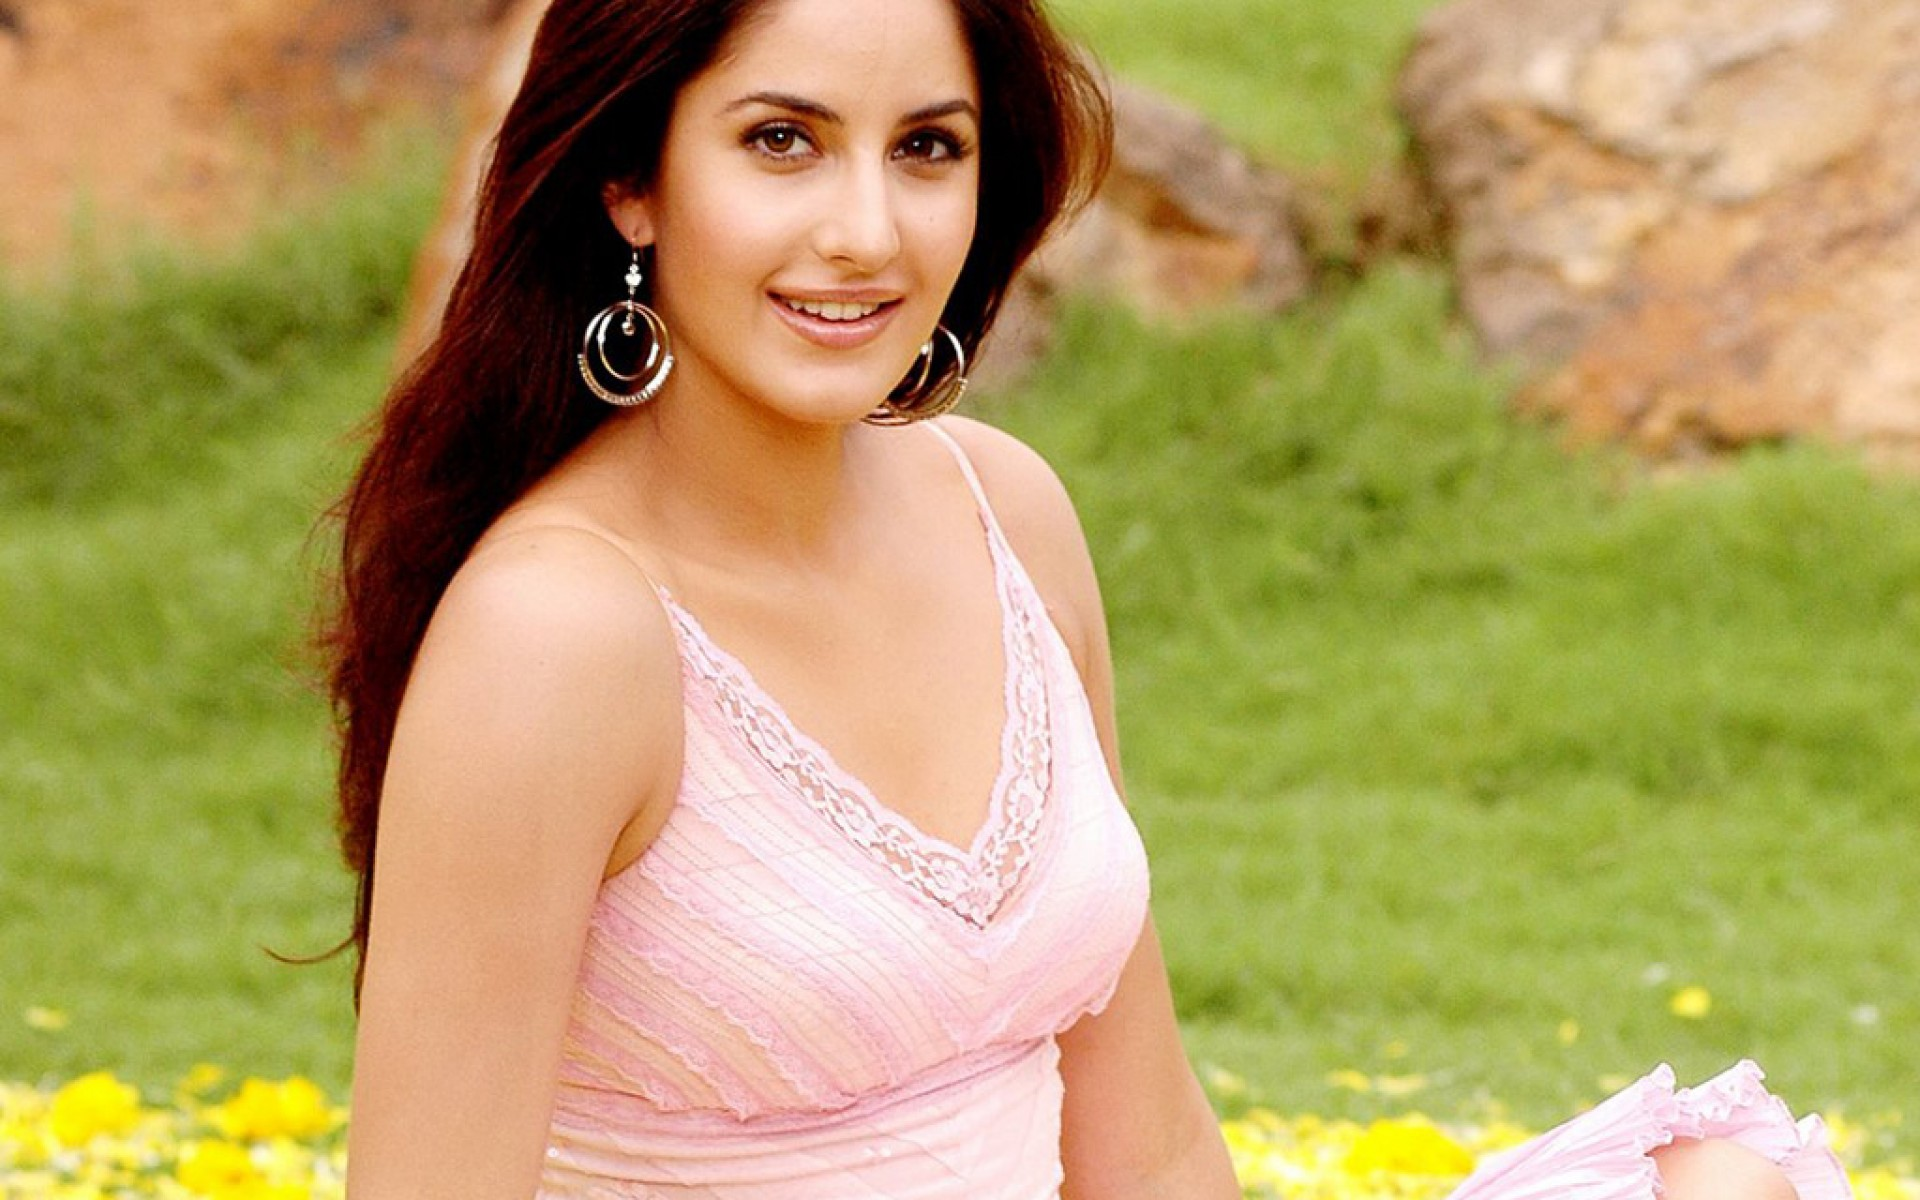 katrina kaif wallpapers high resolution and quality download